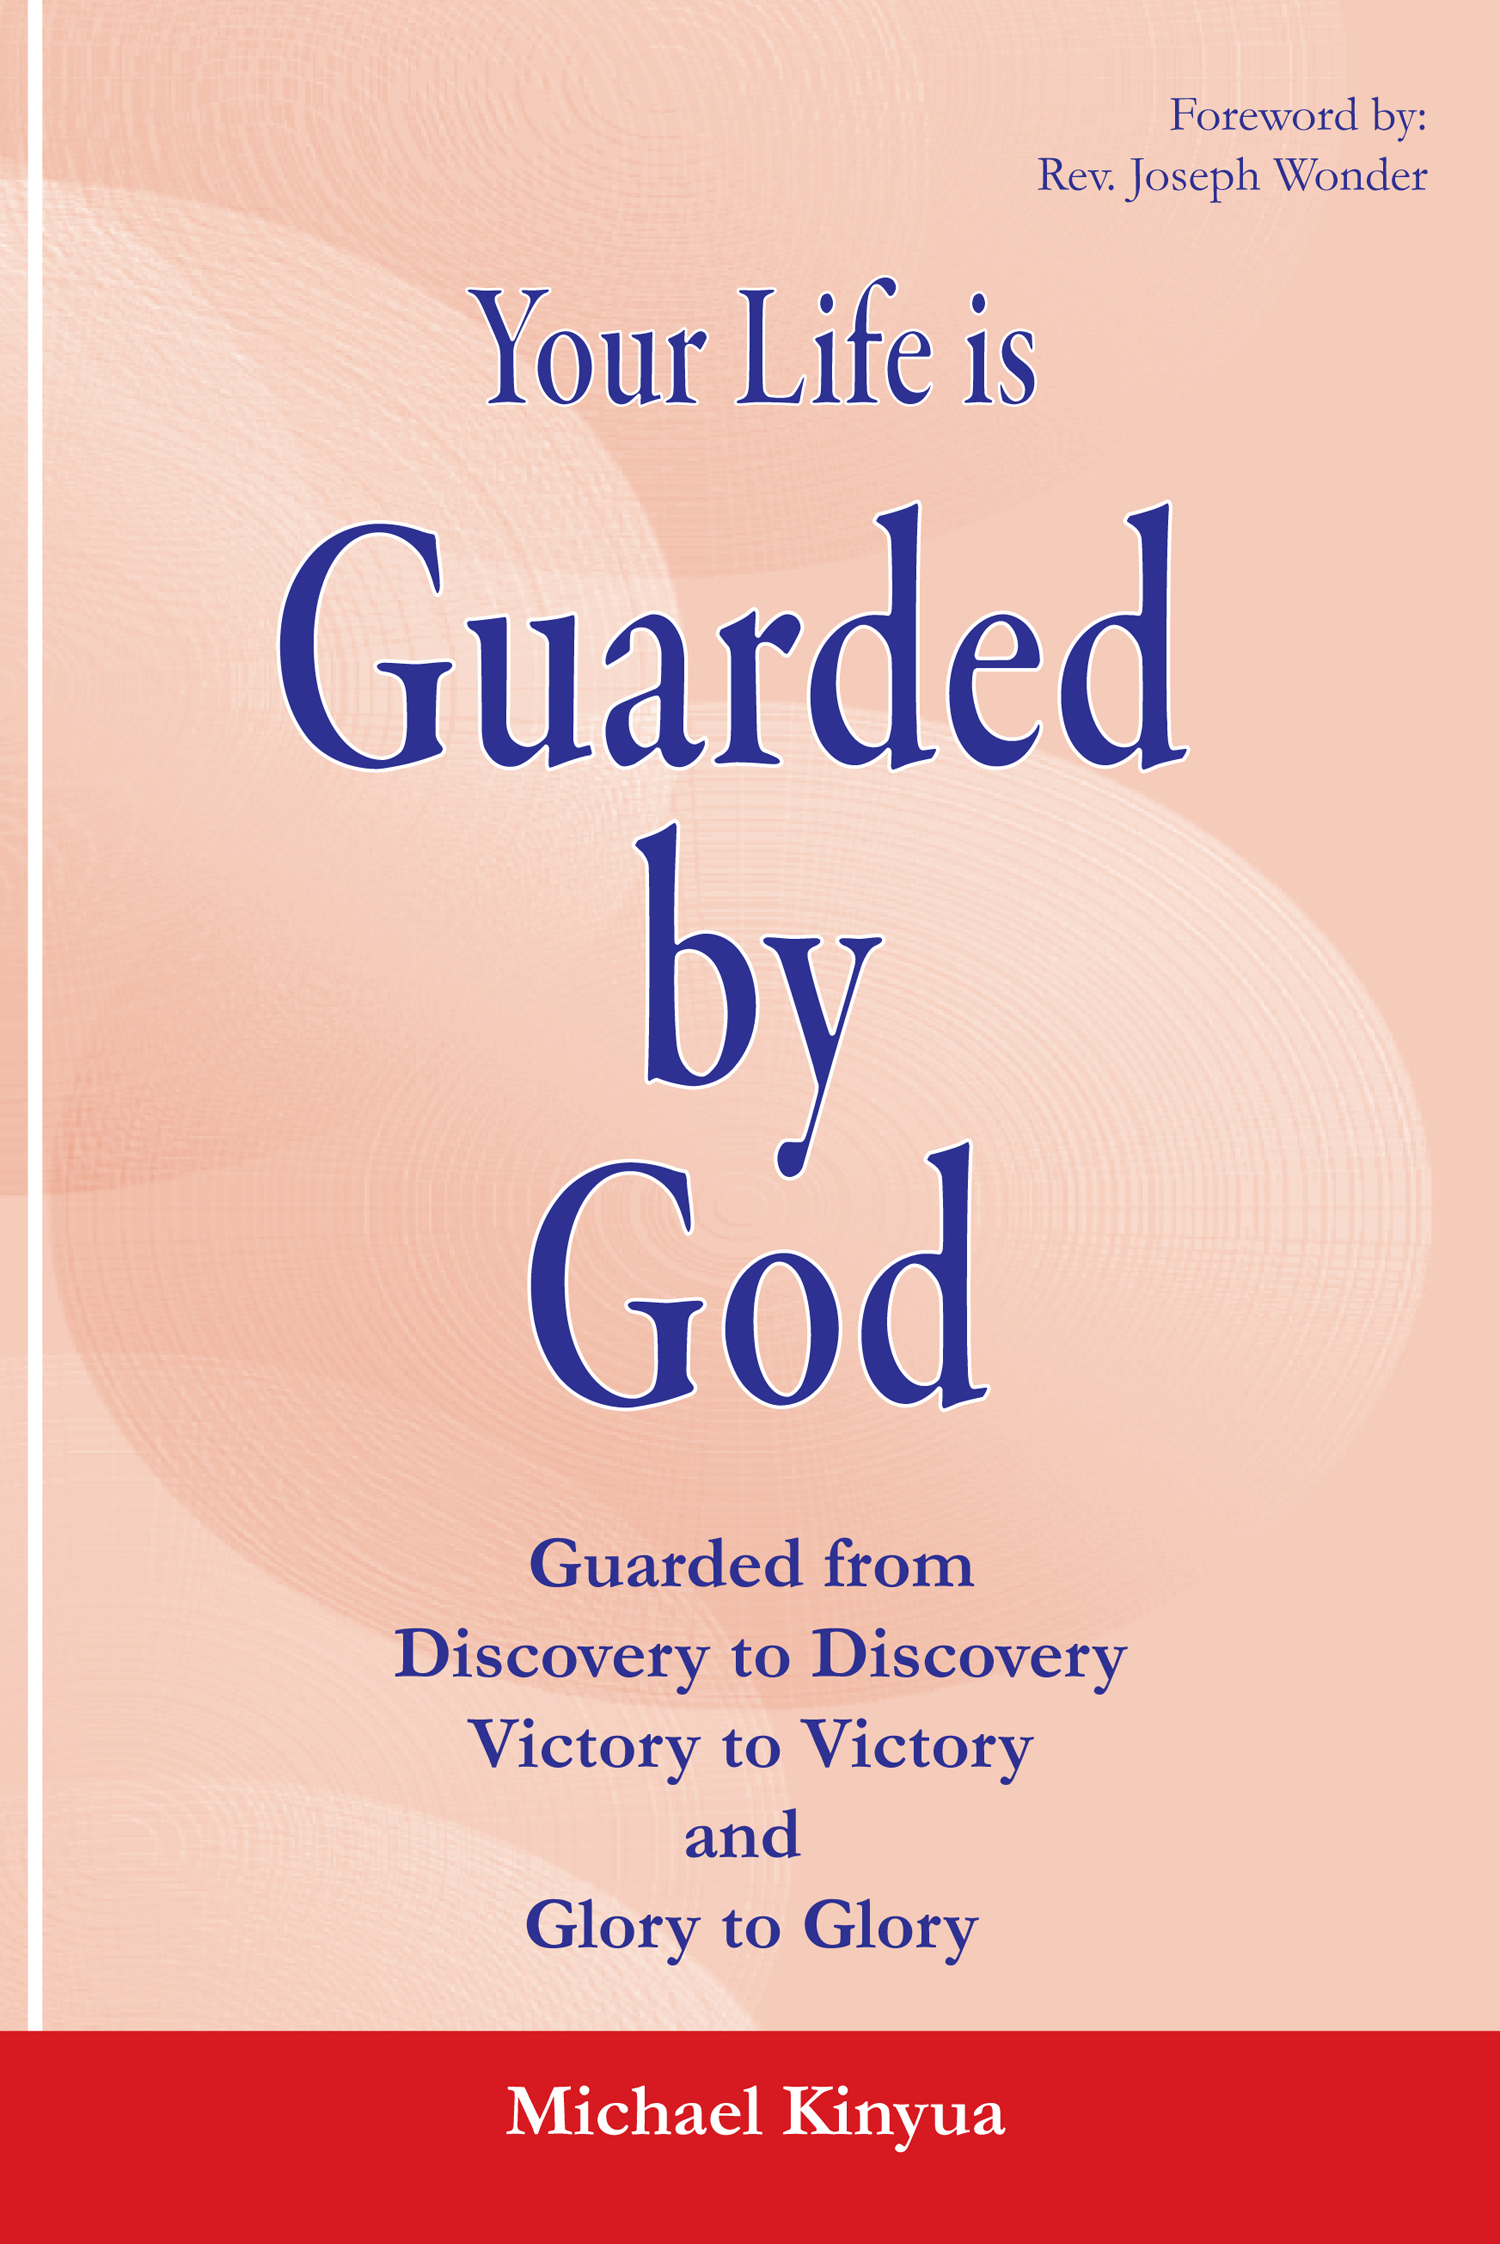 Your Life is Guarded God by Michael Kinyua